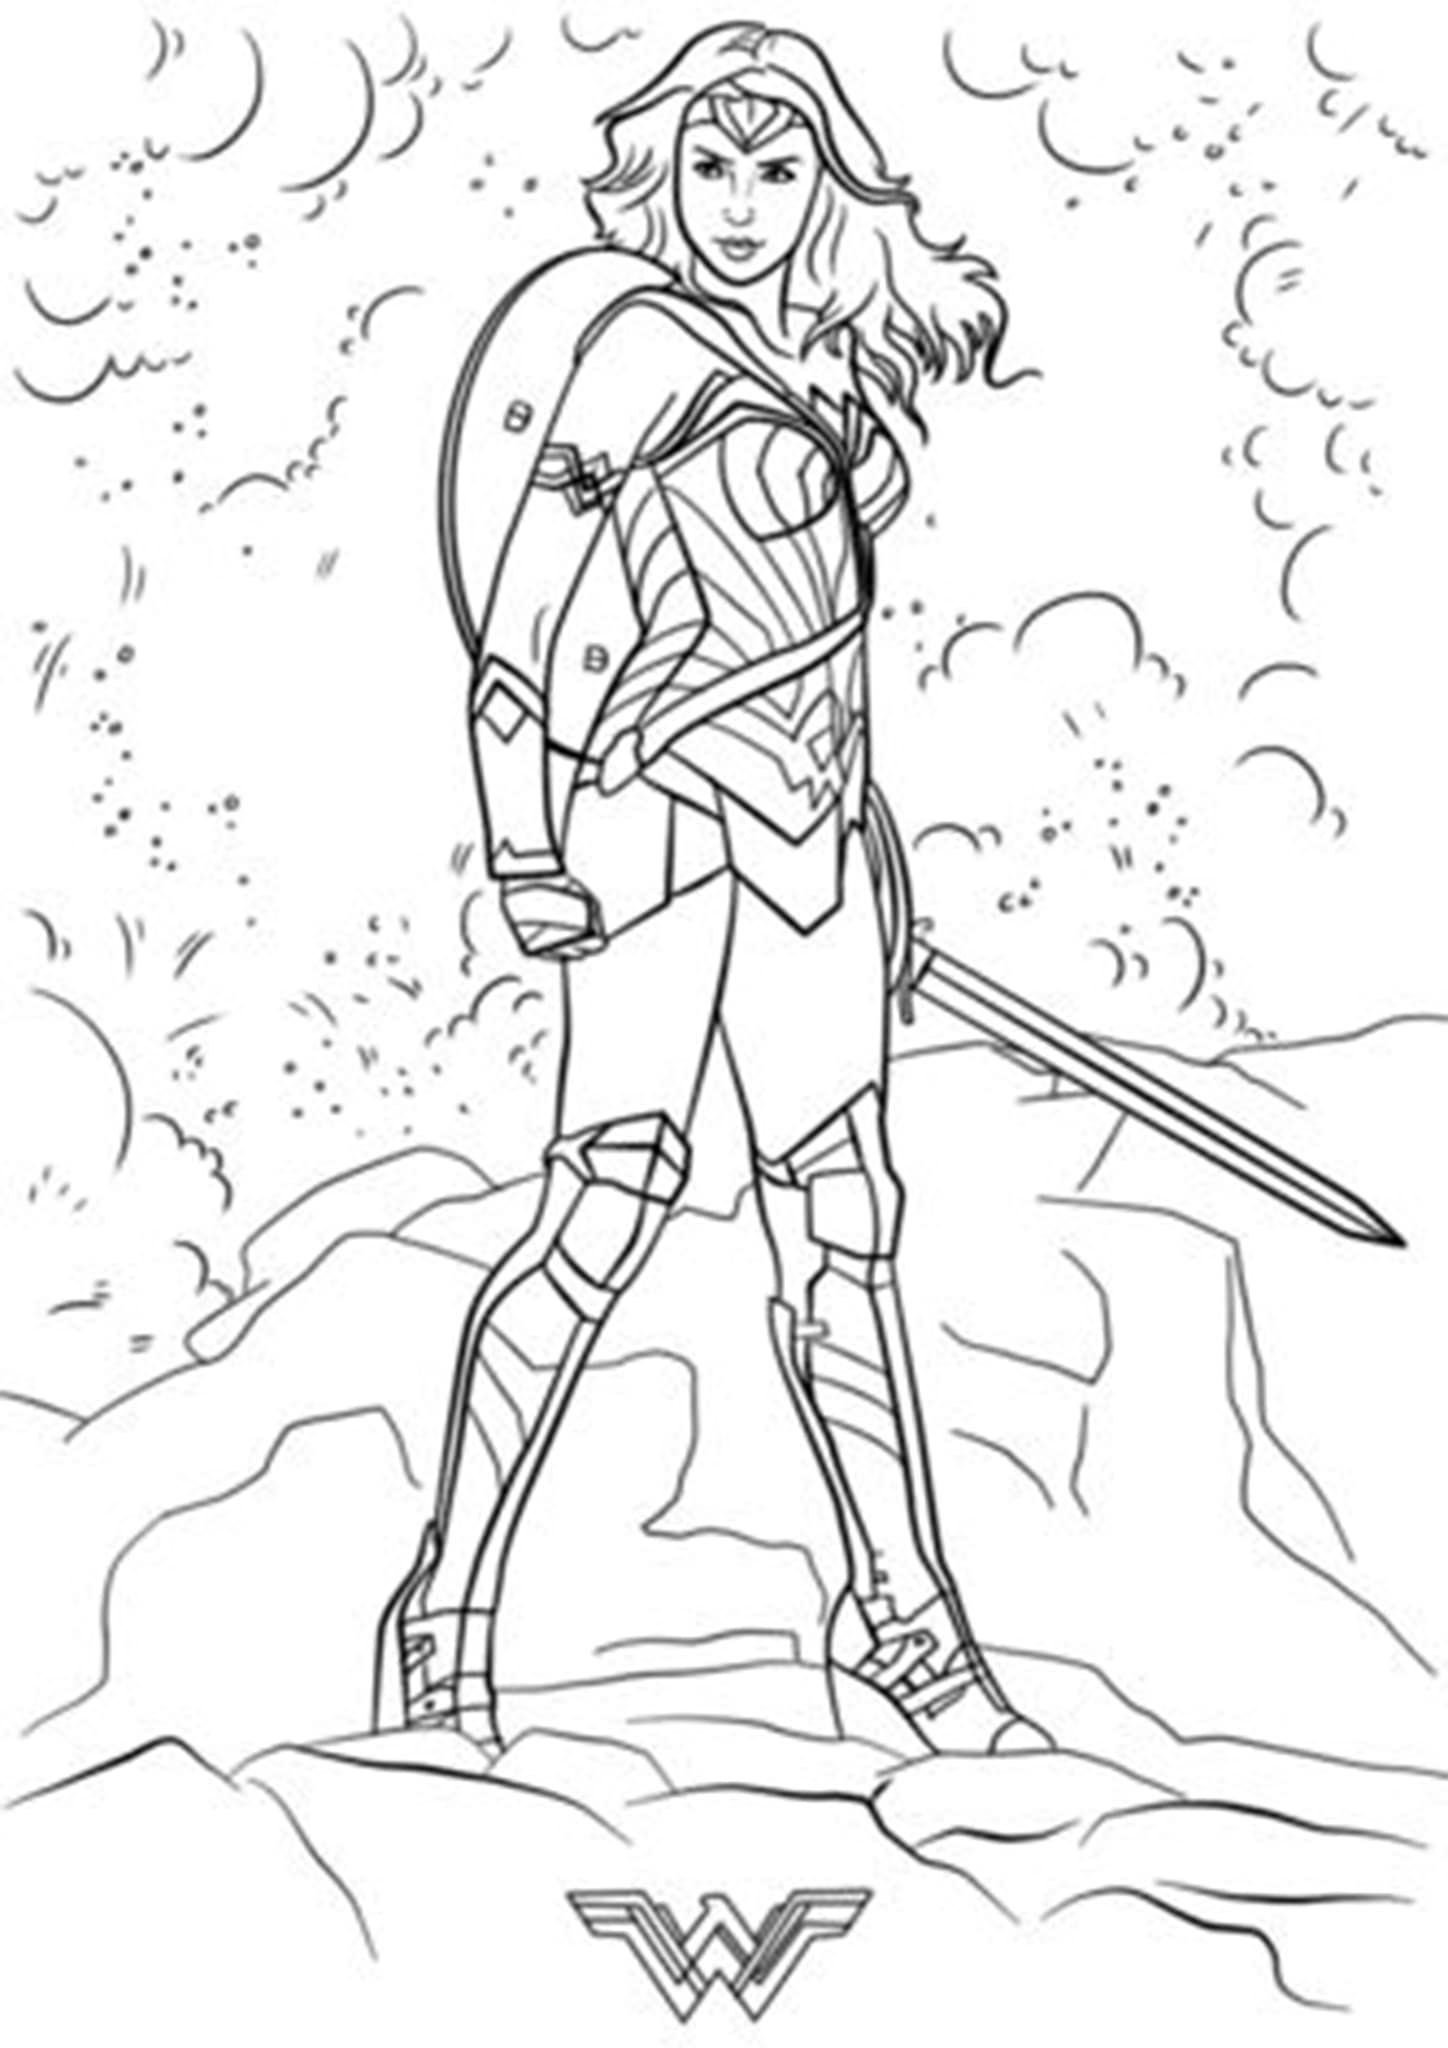 Free Easy To Print Wonder Woman Coloring Pages Superhero Coloring Pages Superhero Coloring Coloring Pages